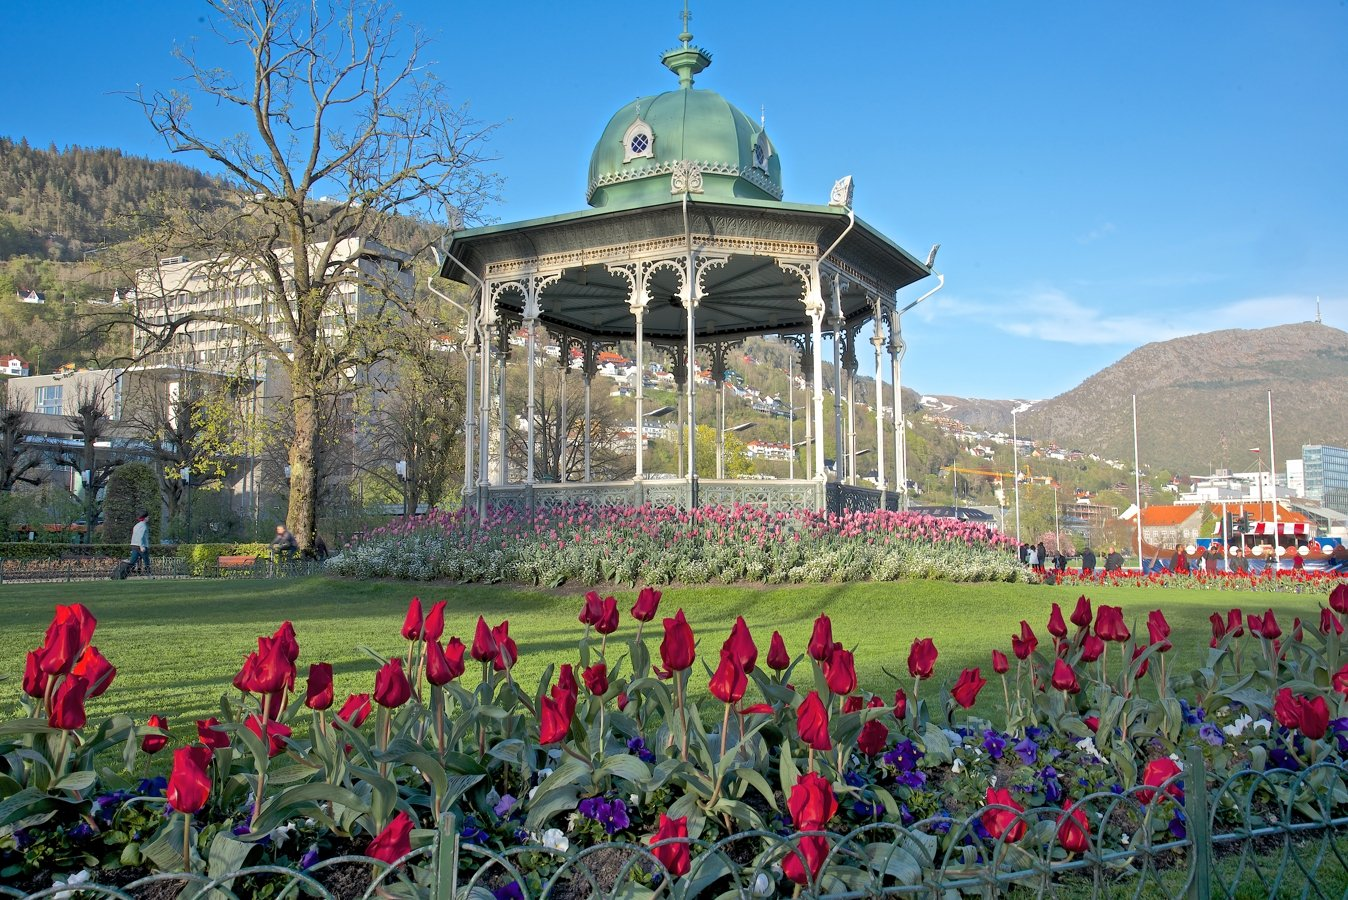 Byparken 15 may 2015